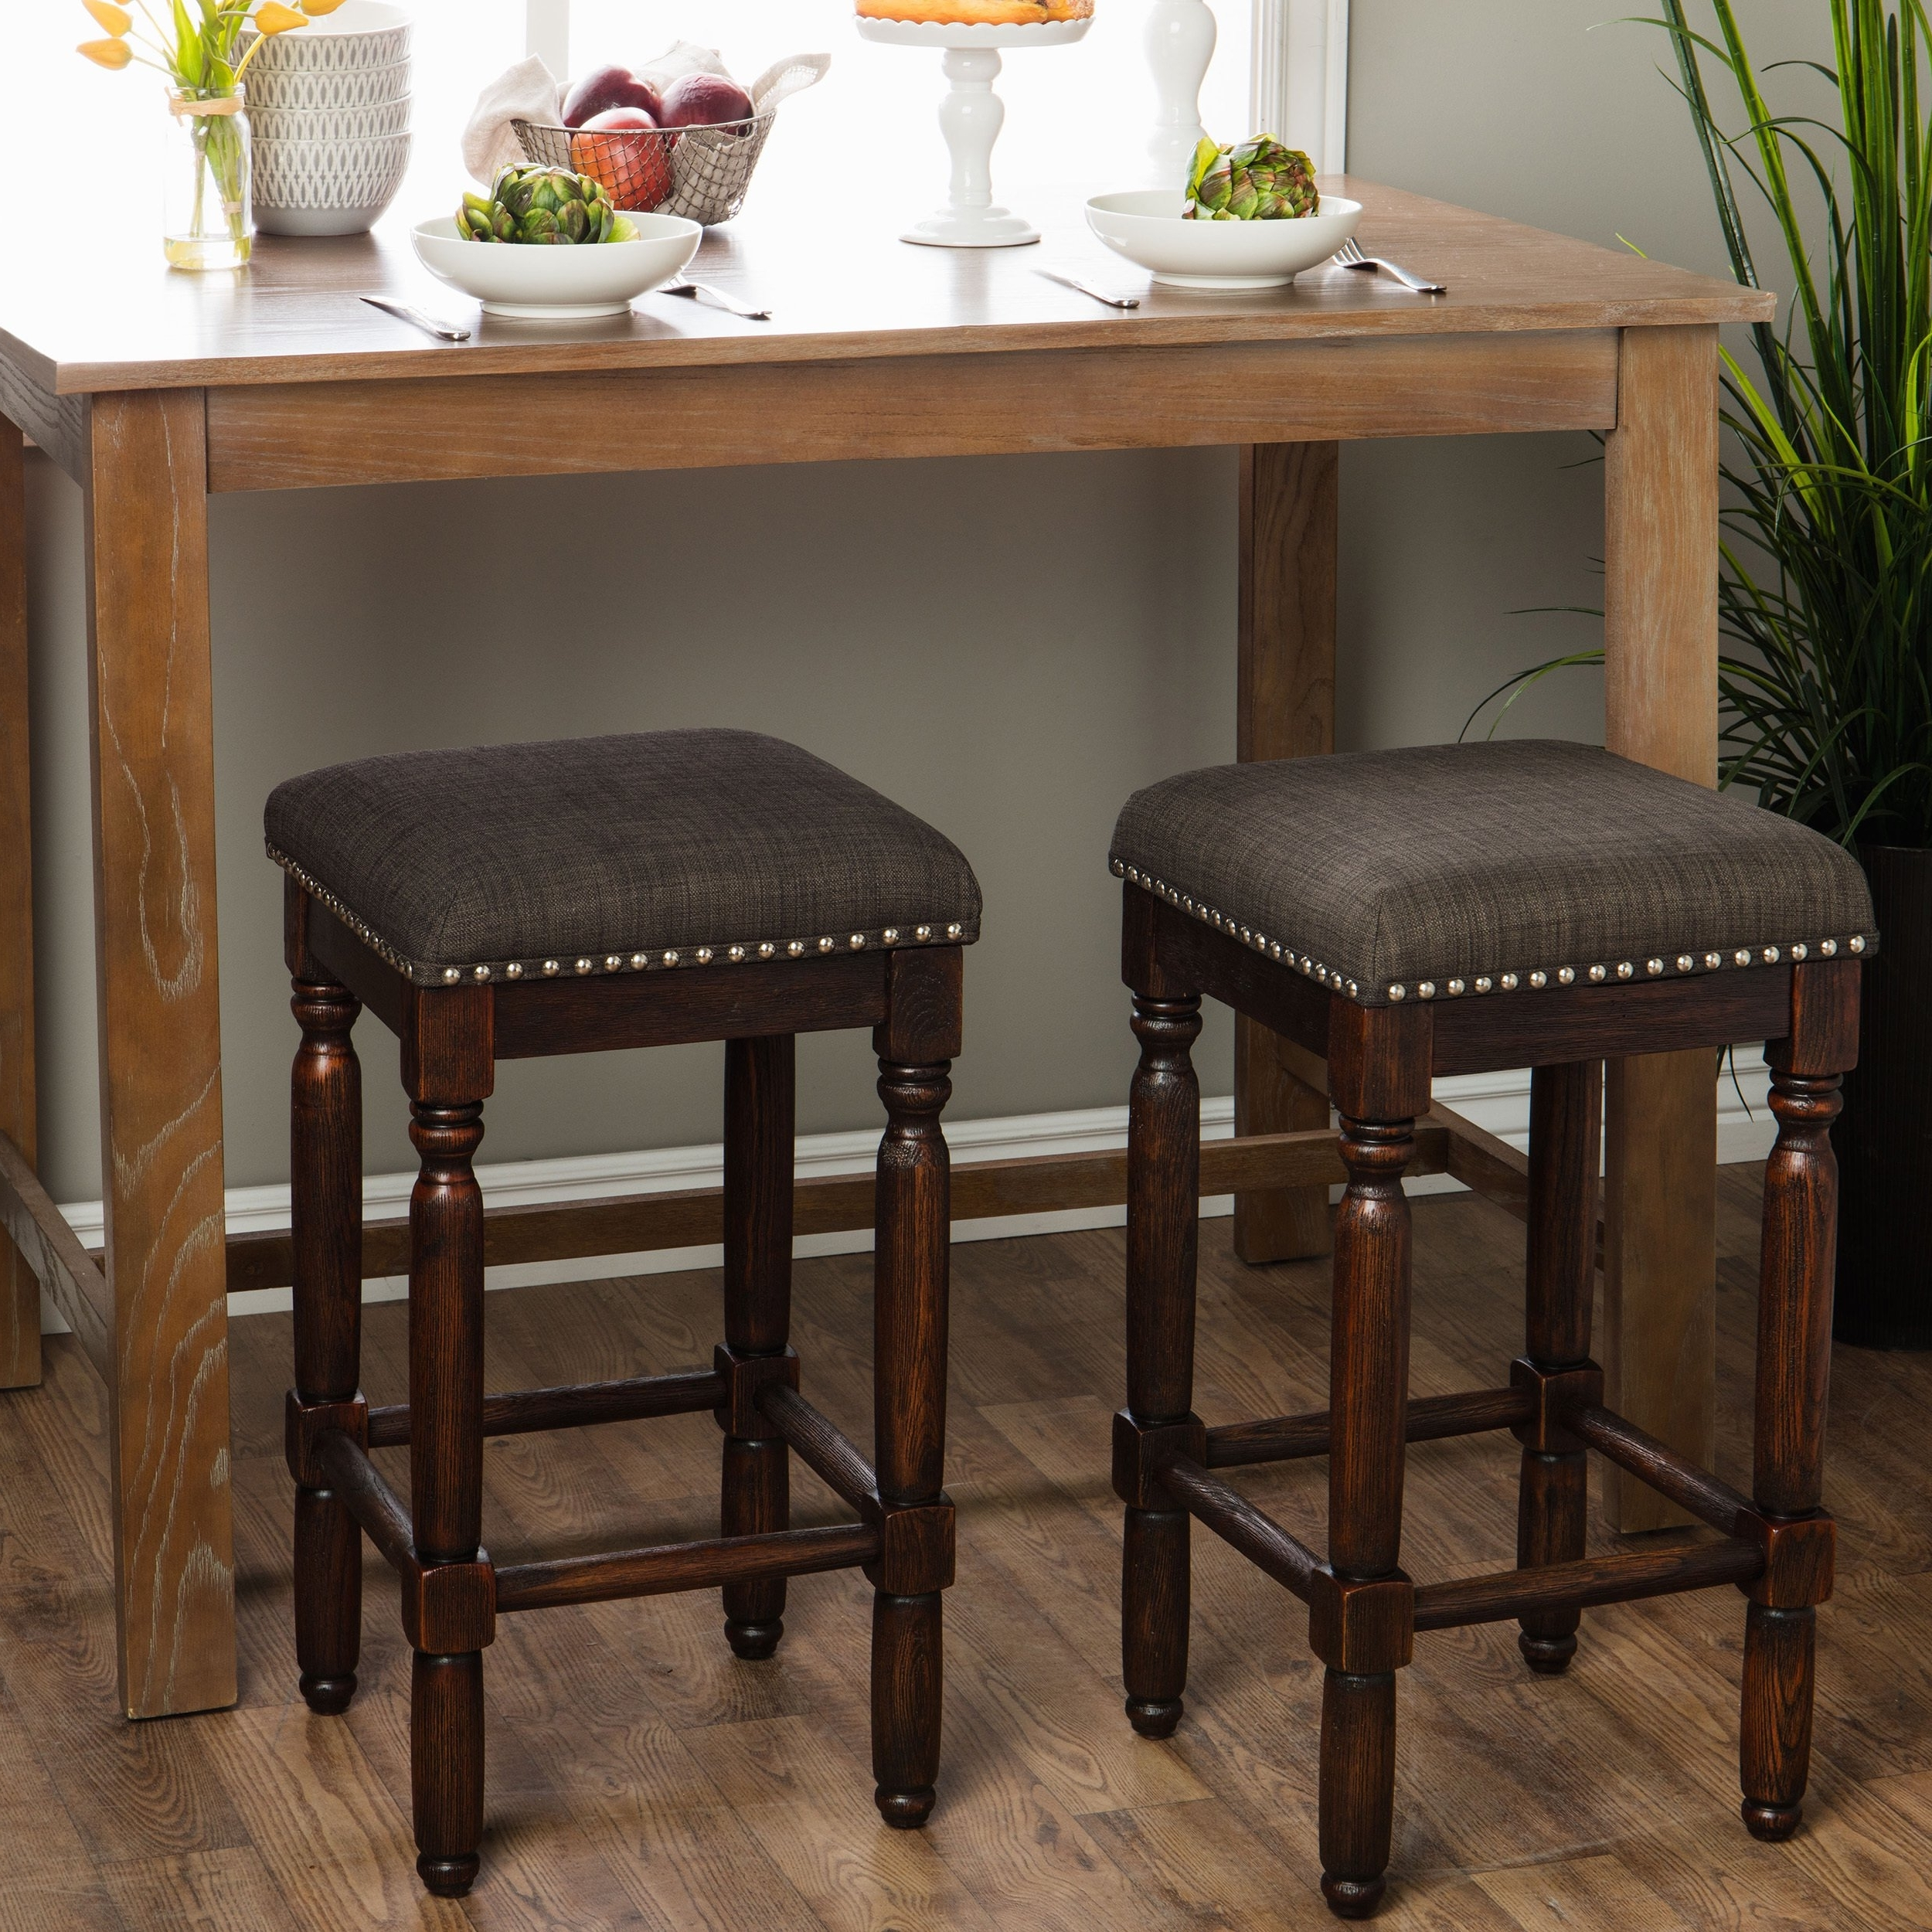 Most Recent Shop Carbon Loft Branson Coffee Counter Stools (Set Of 2) – Free Within Laurent 7 Piece Counter Sets With Upholstered Counterstools (View 13 of 25)